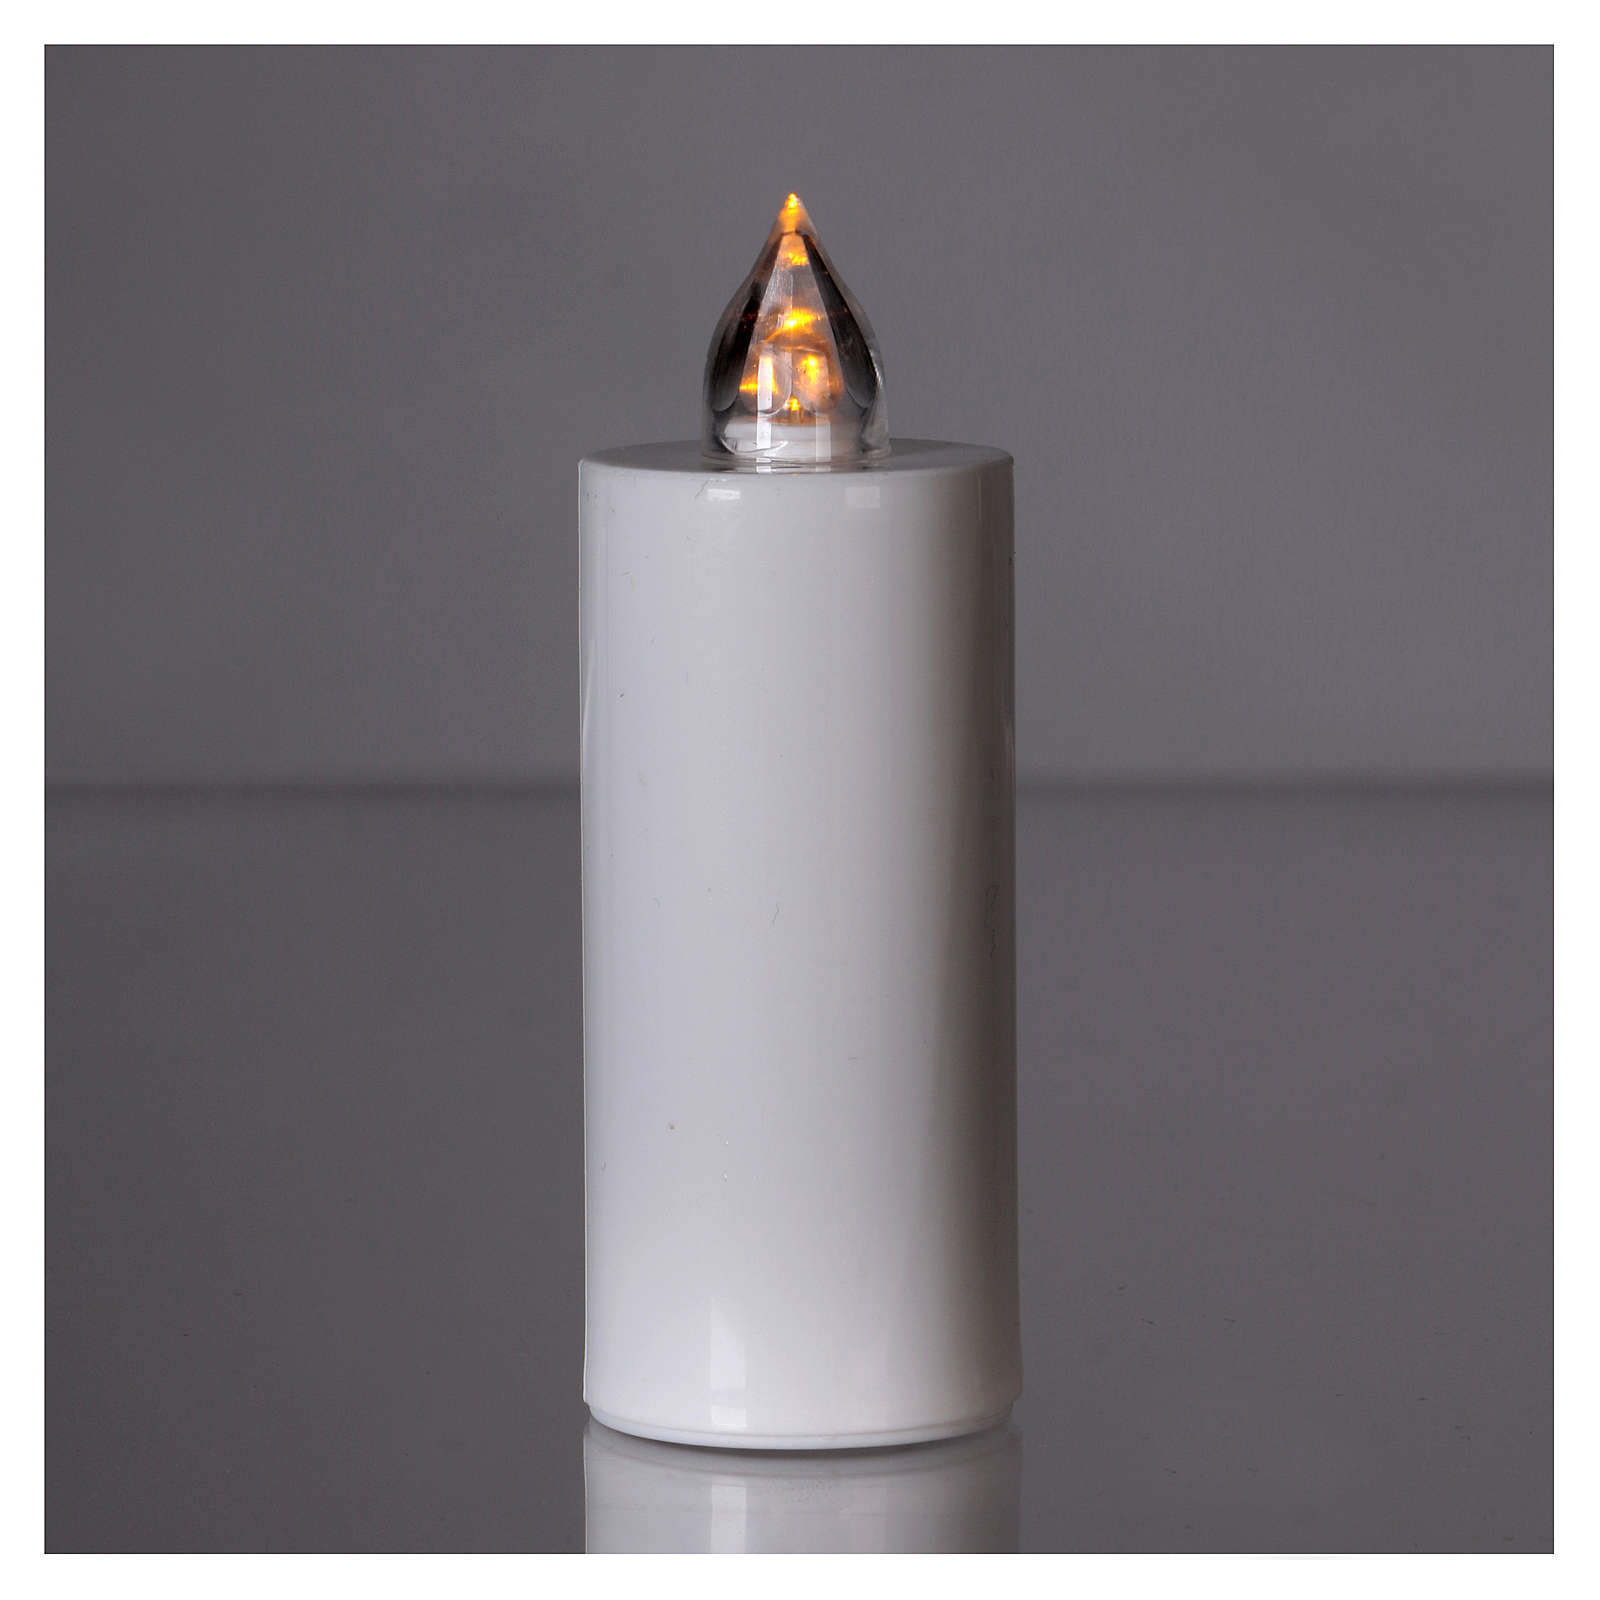 Lumada electric votive candle with yellow intermittent light 3